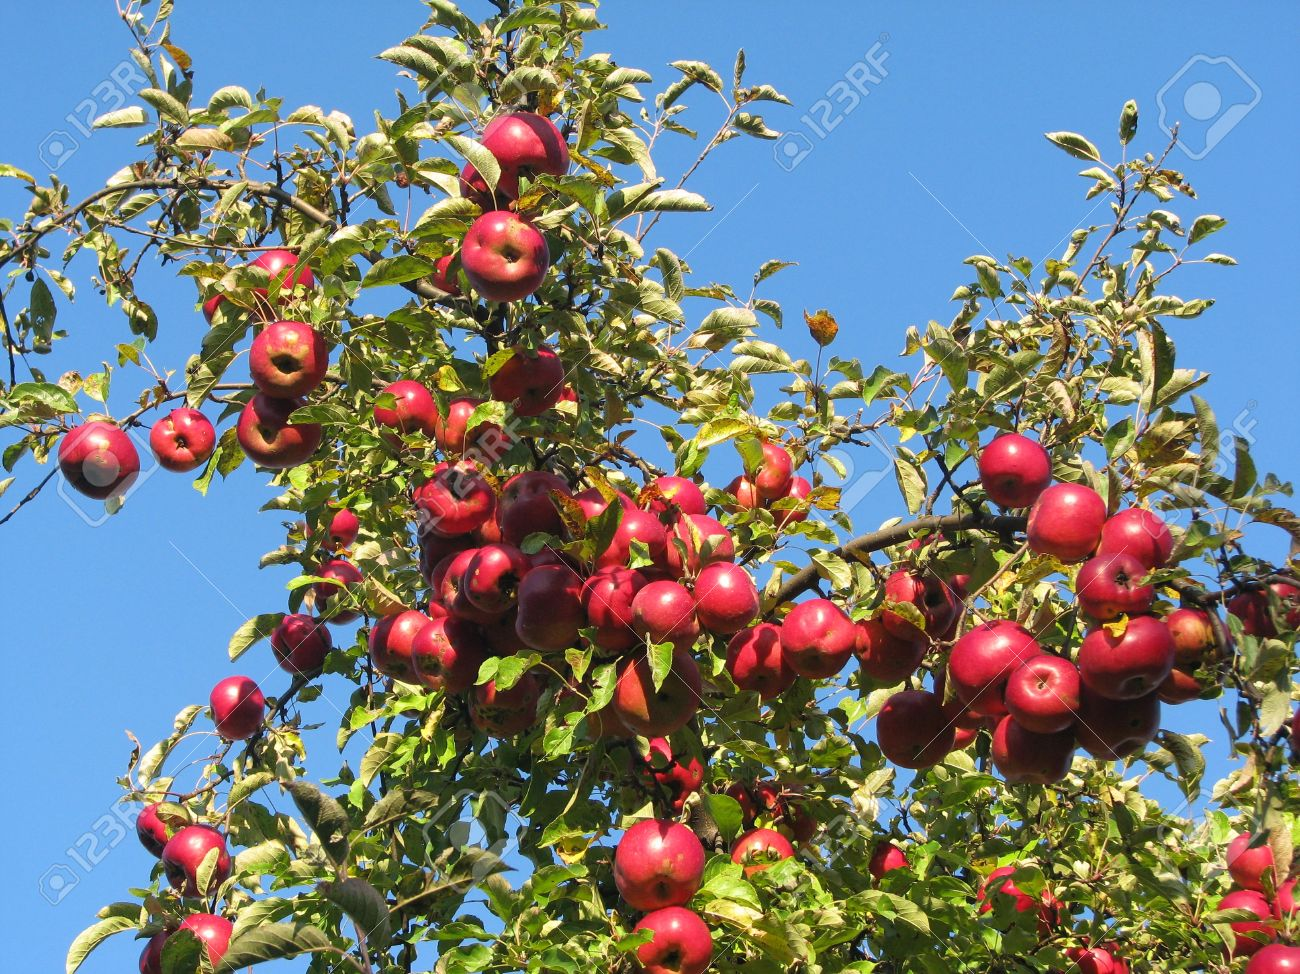 Apple tree branches loaded with red ripe apples against a vivid blue sky--natural light Stock Photo - 12710264